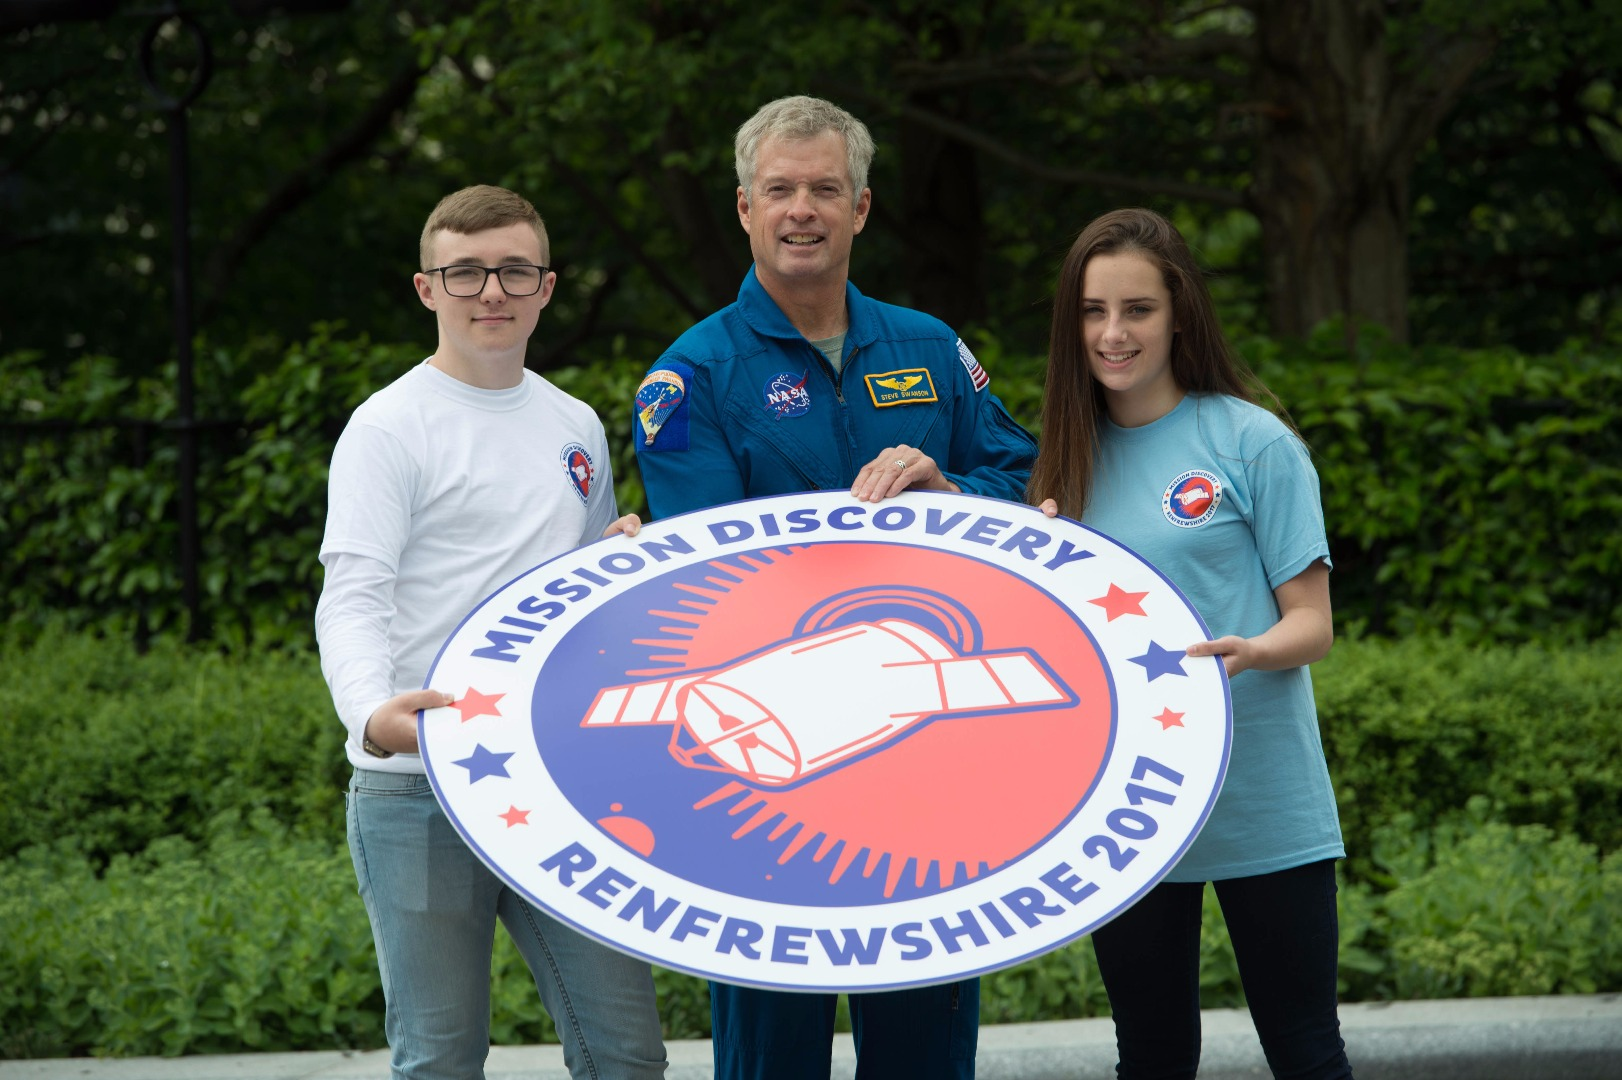 NASA astronaut launches out of this world space school in Renfrewshire